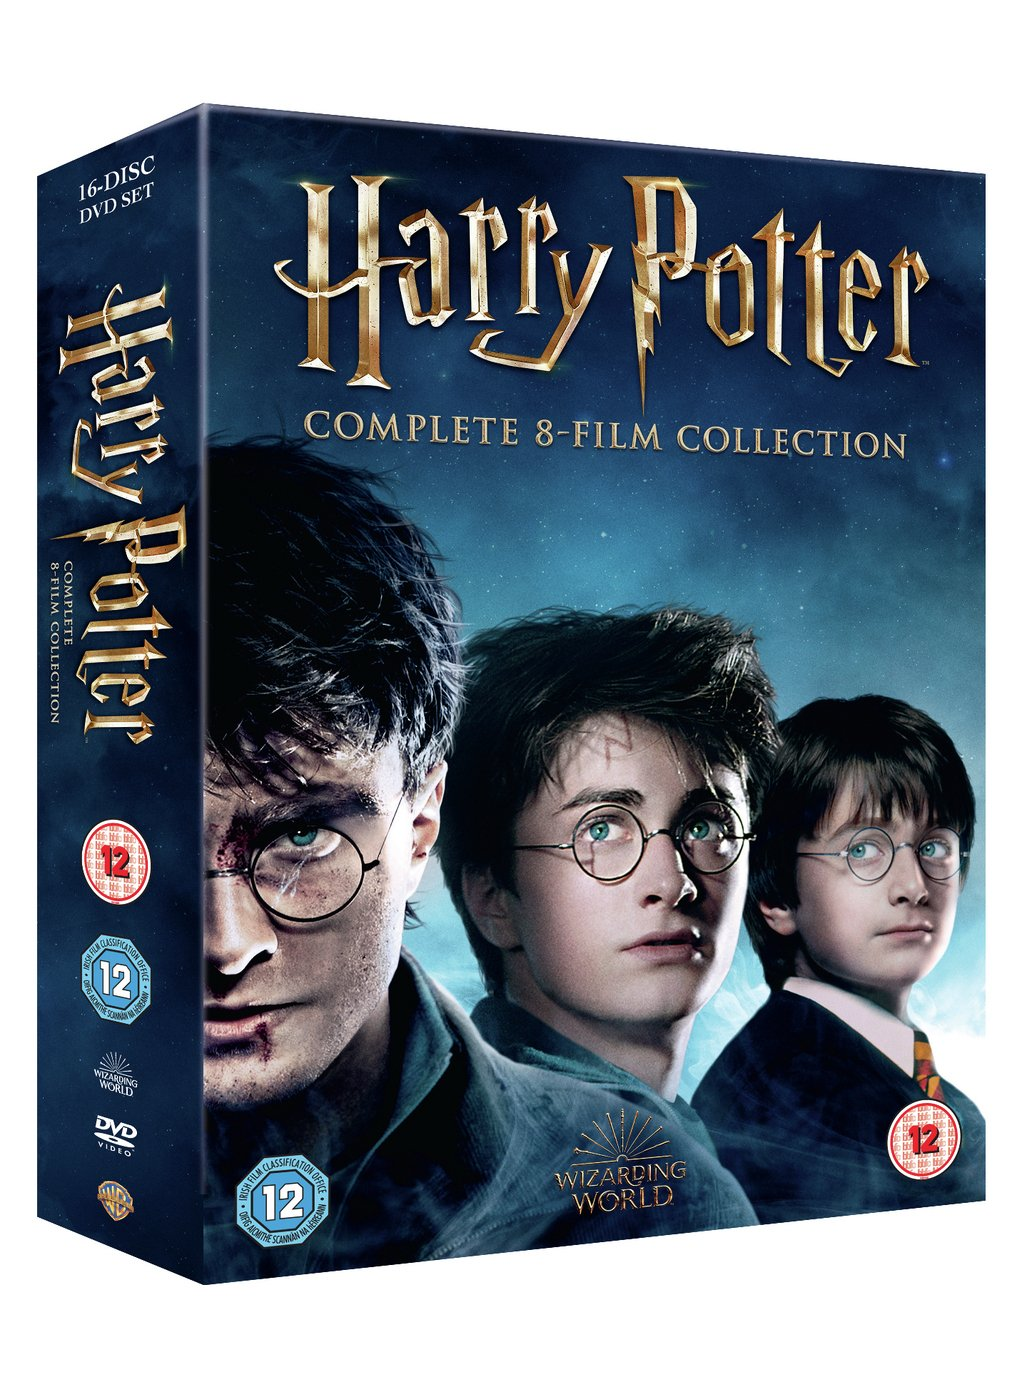 Harry Potter: The Complete DVD Box Set